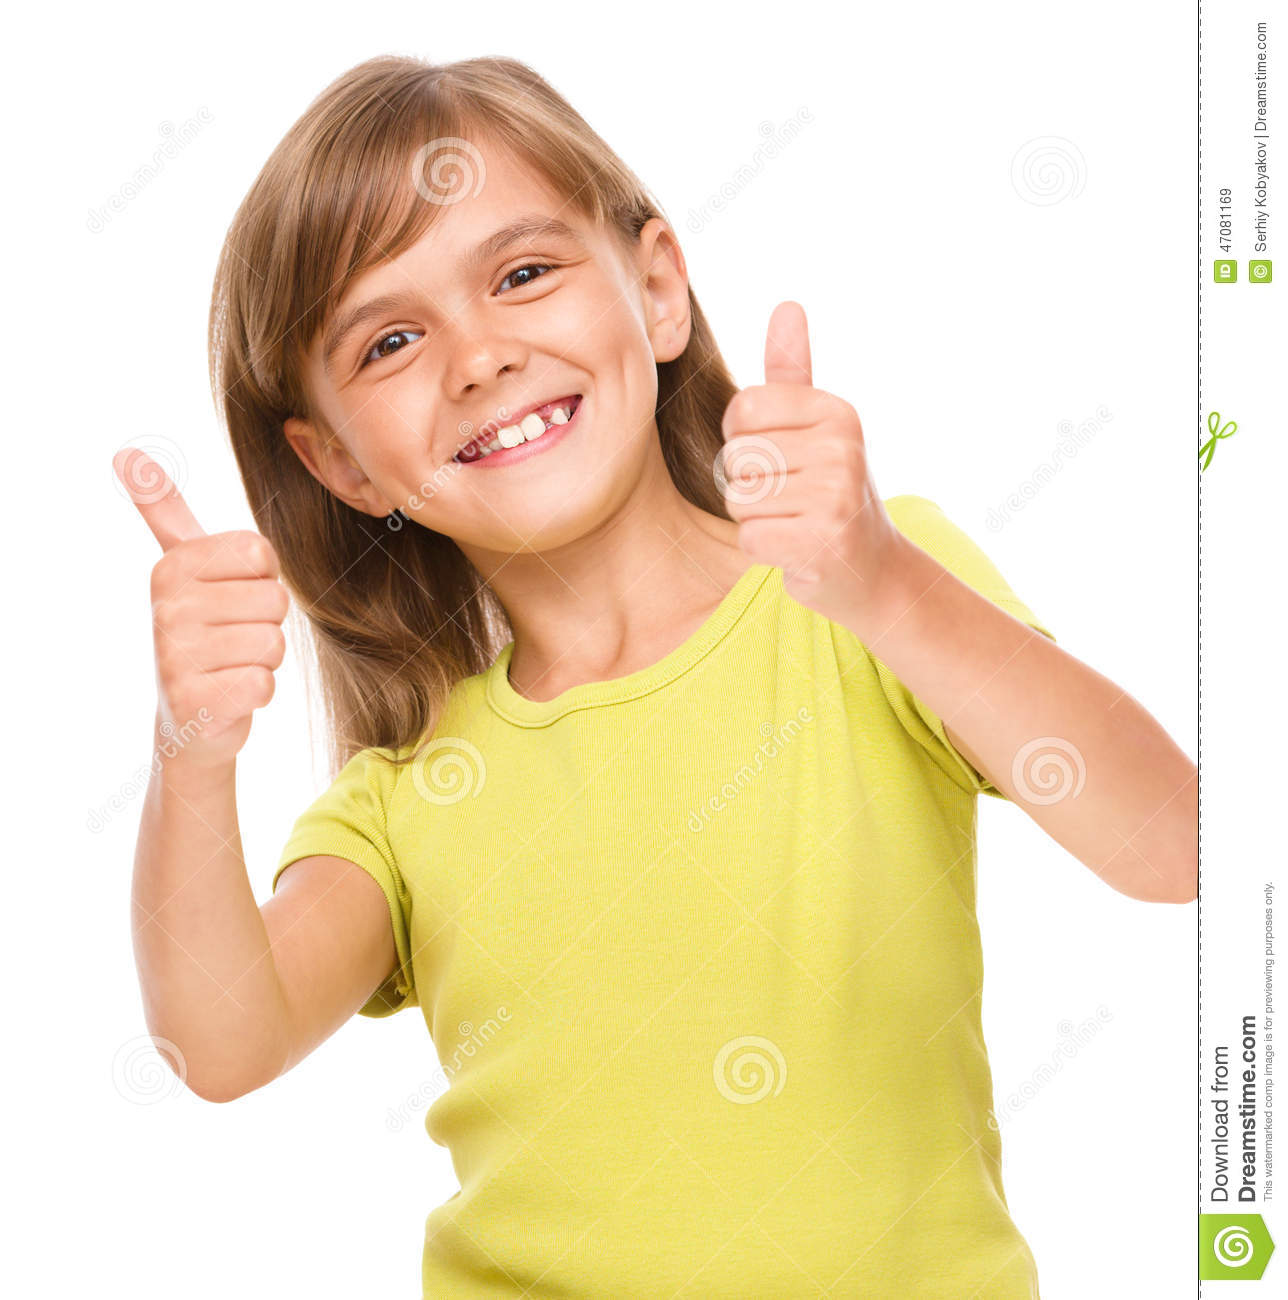 Little girl is showing thumb up sign